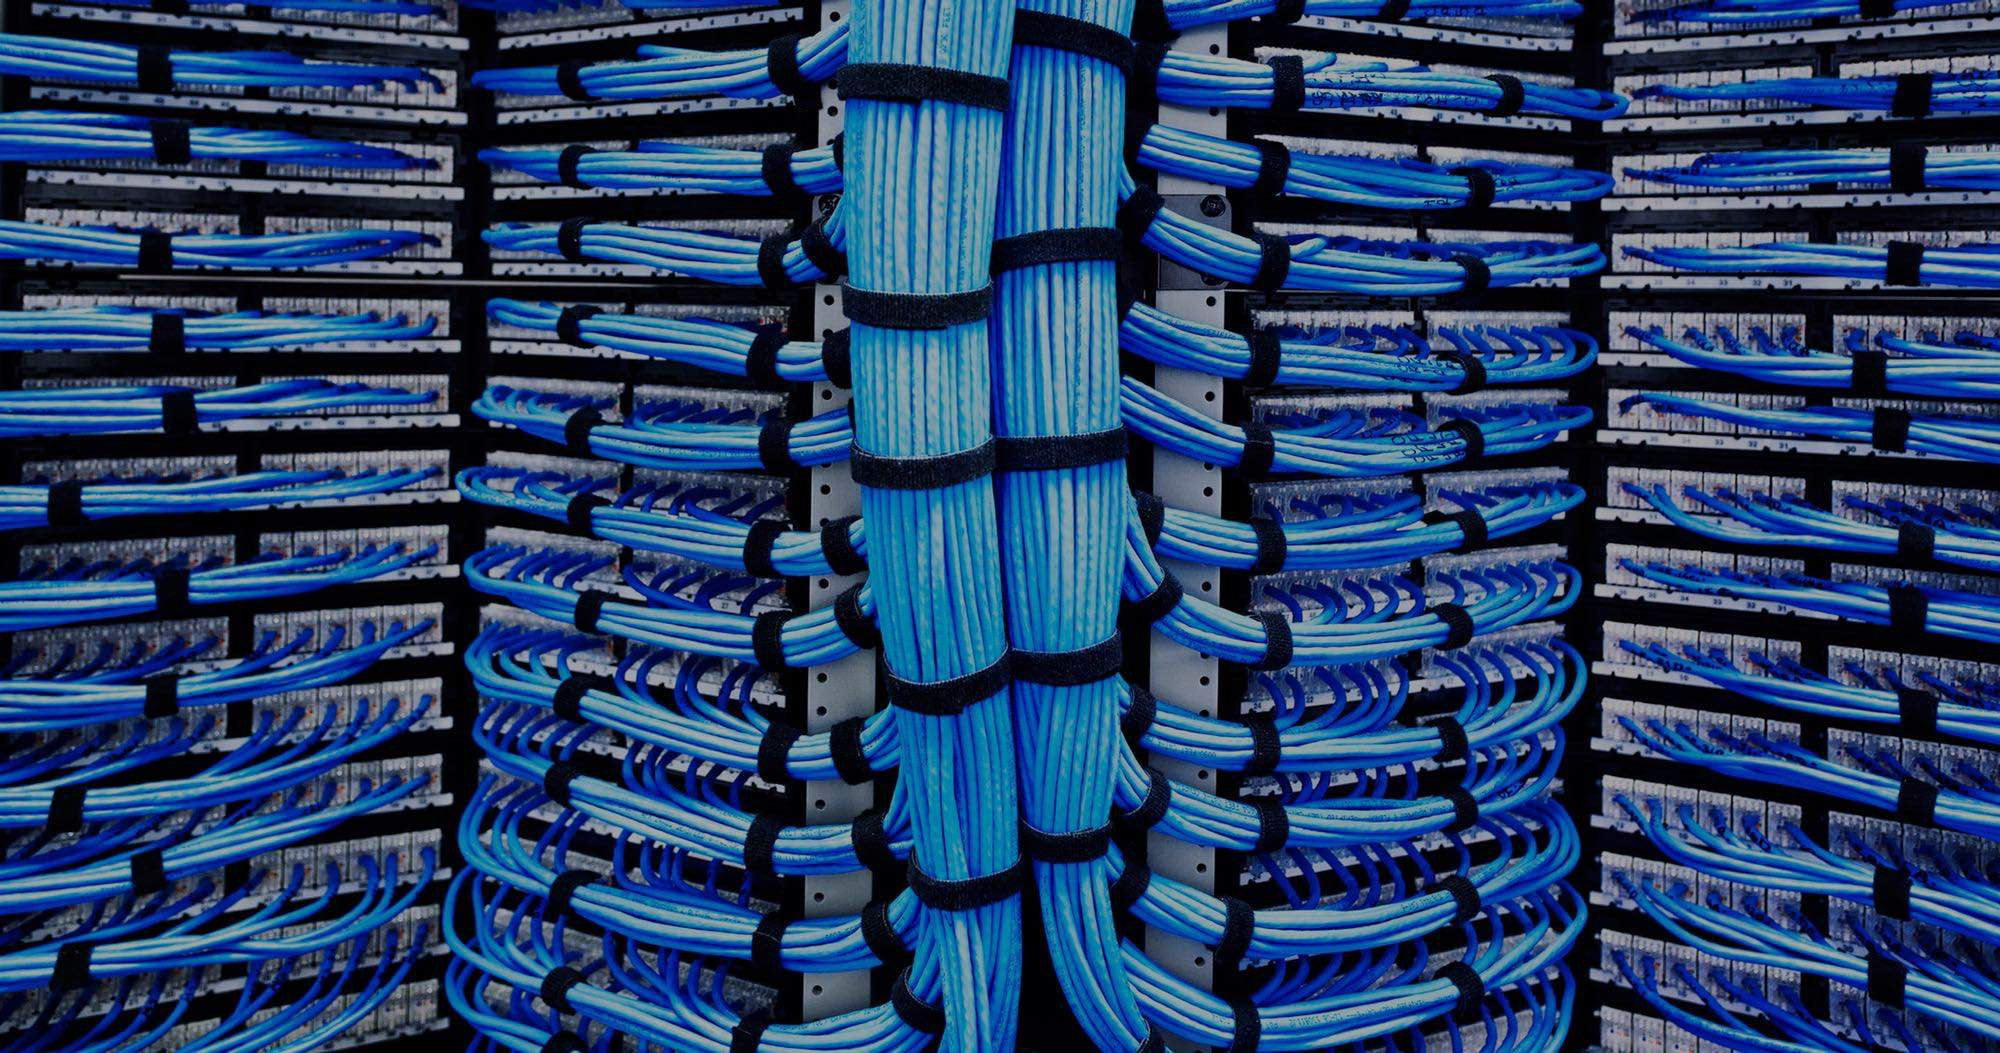 Racks of networked internet connection